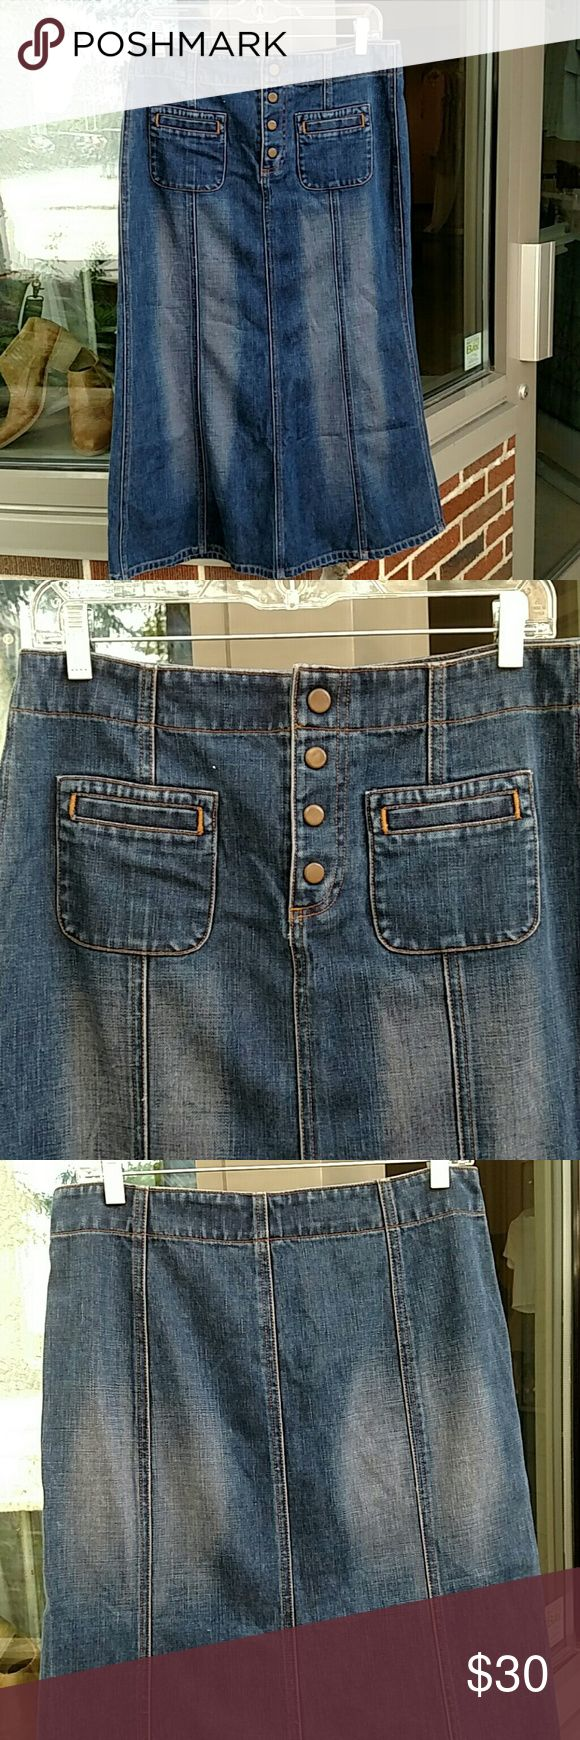 Gap long jean skirt Dark denim with light white wash distressed fade on front and back with rounded pockets and lined section design in front and back GAP Skirts Midi